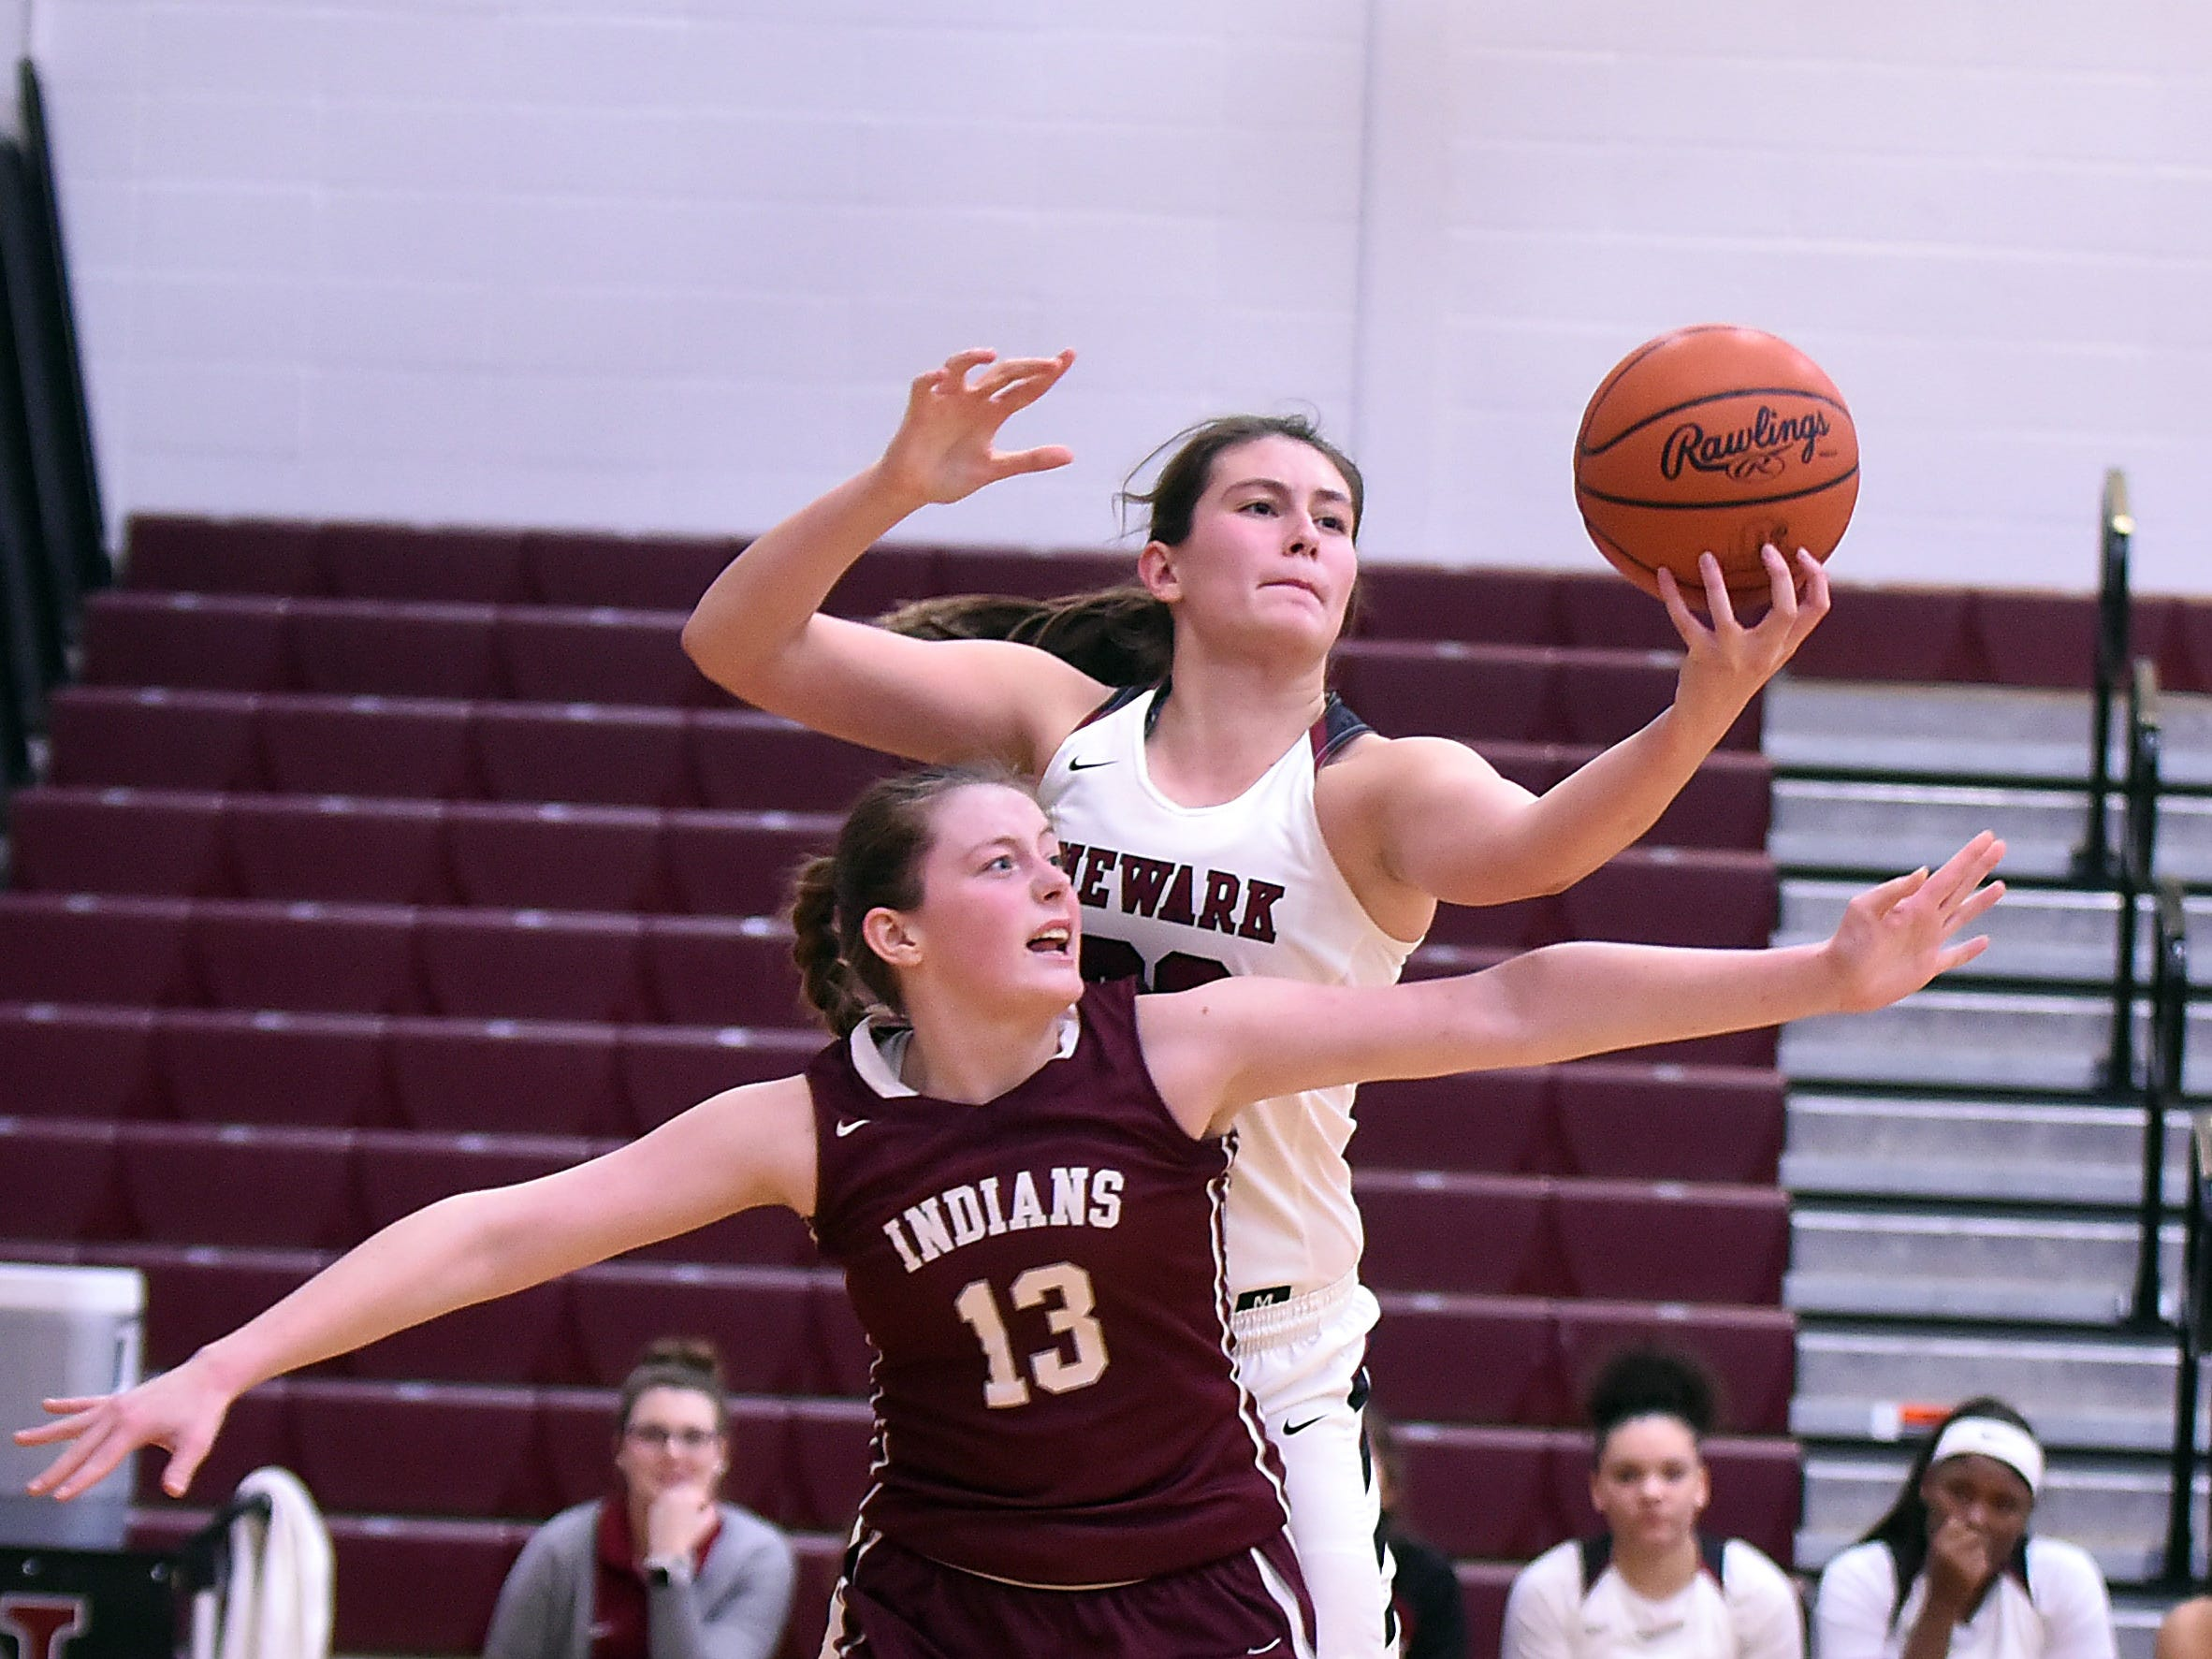 Canal Winchester junior Natalie Rarick and Newark sophomore Abby Derwacter fight for a rebound during the second half of Friday night's game at Newark High School. The Wildcats won 70-49.